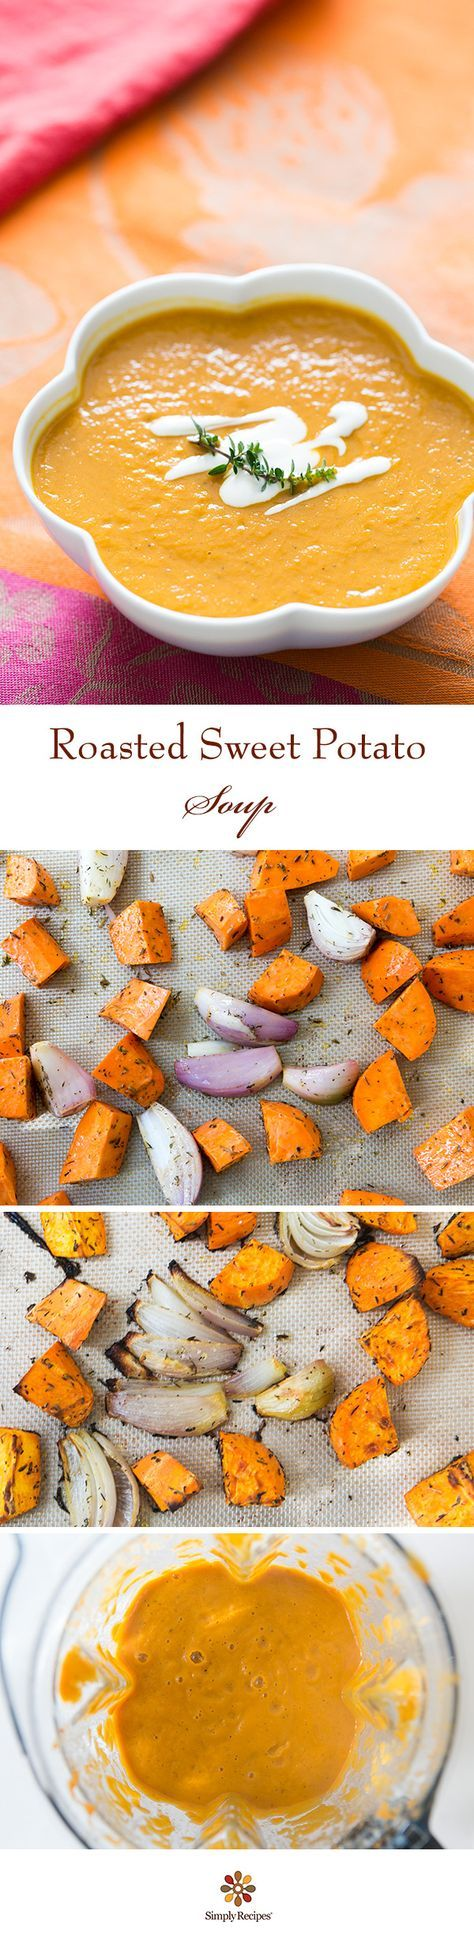 EASY Roasted Sweet Potato Soup! With shallots, cumin, thyme, and stock. Swirl in a little sour cream or yogurt to serve. #glutenfree Get the recipe on SimplyRecipes.com